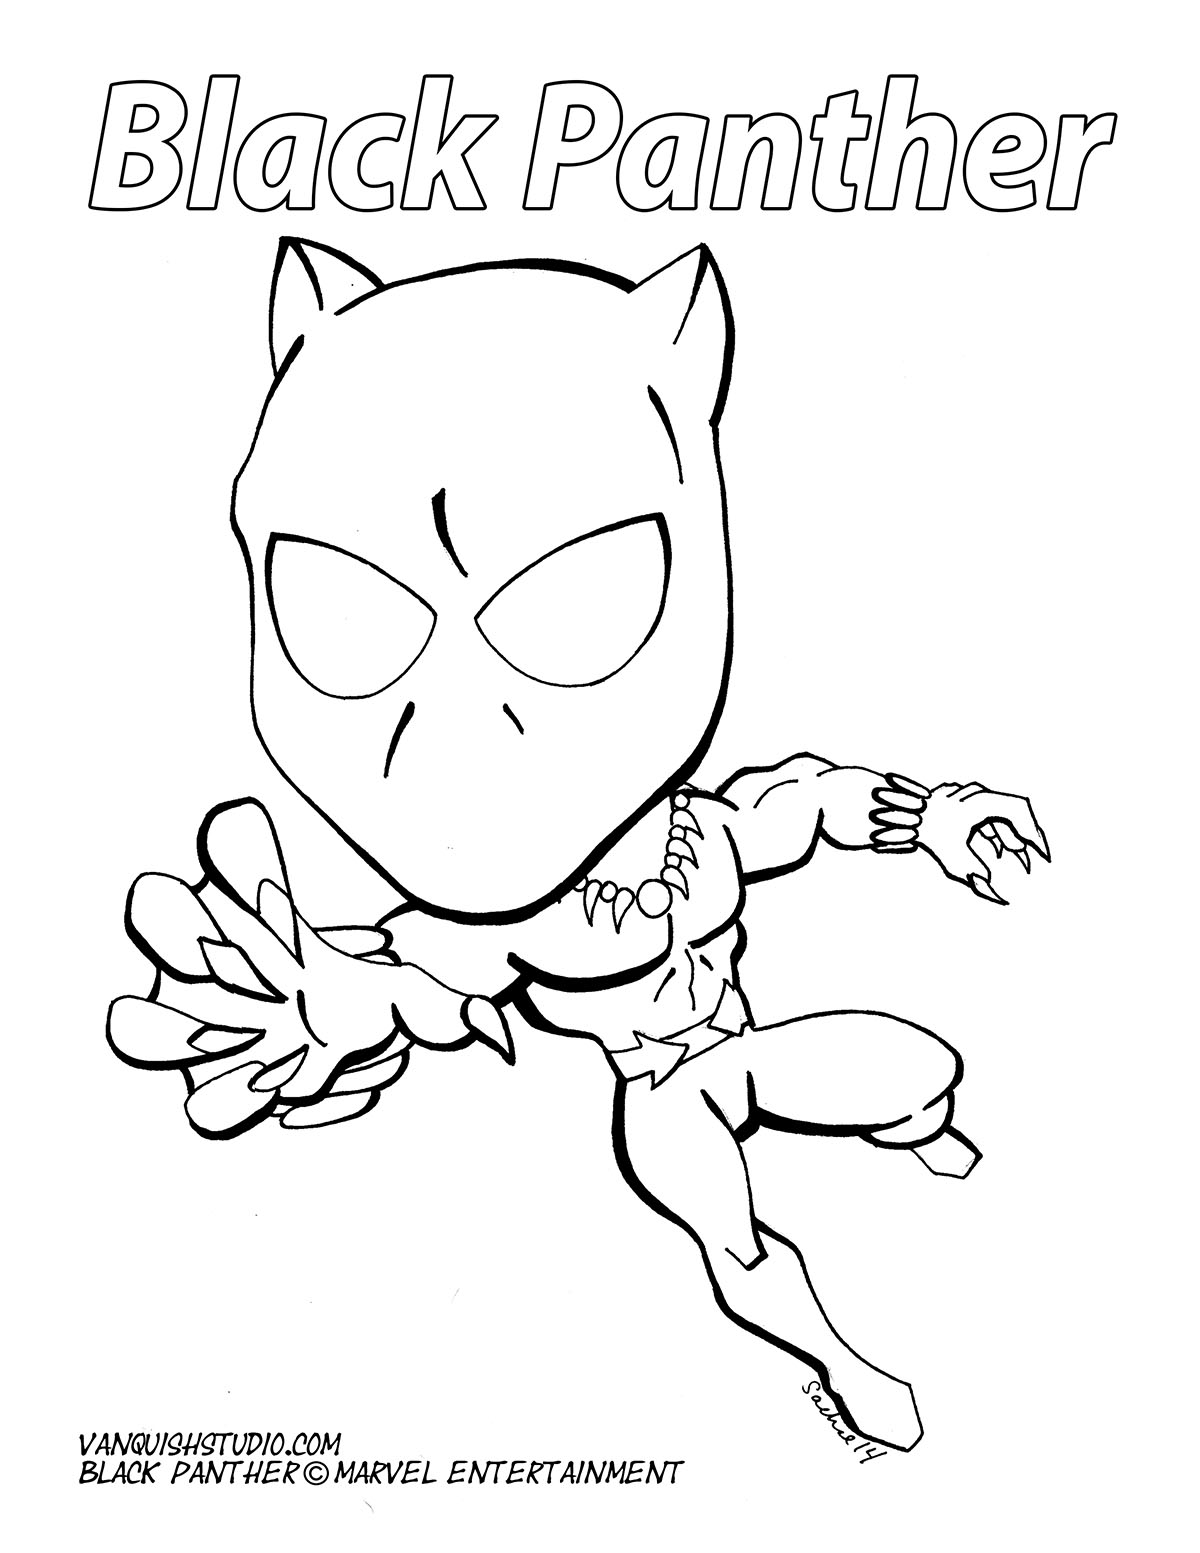 black panther coloring pages marvel black panther coloring pages eliolera - Black Panther Coloring Pages